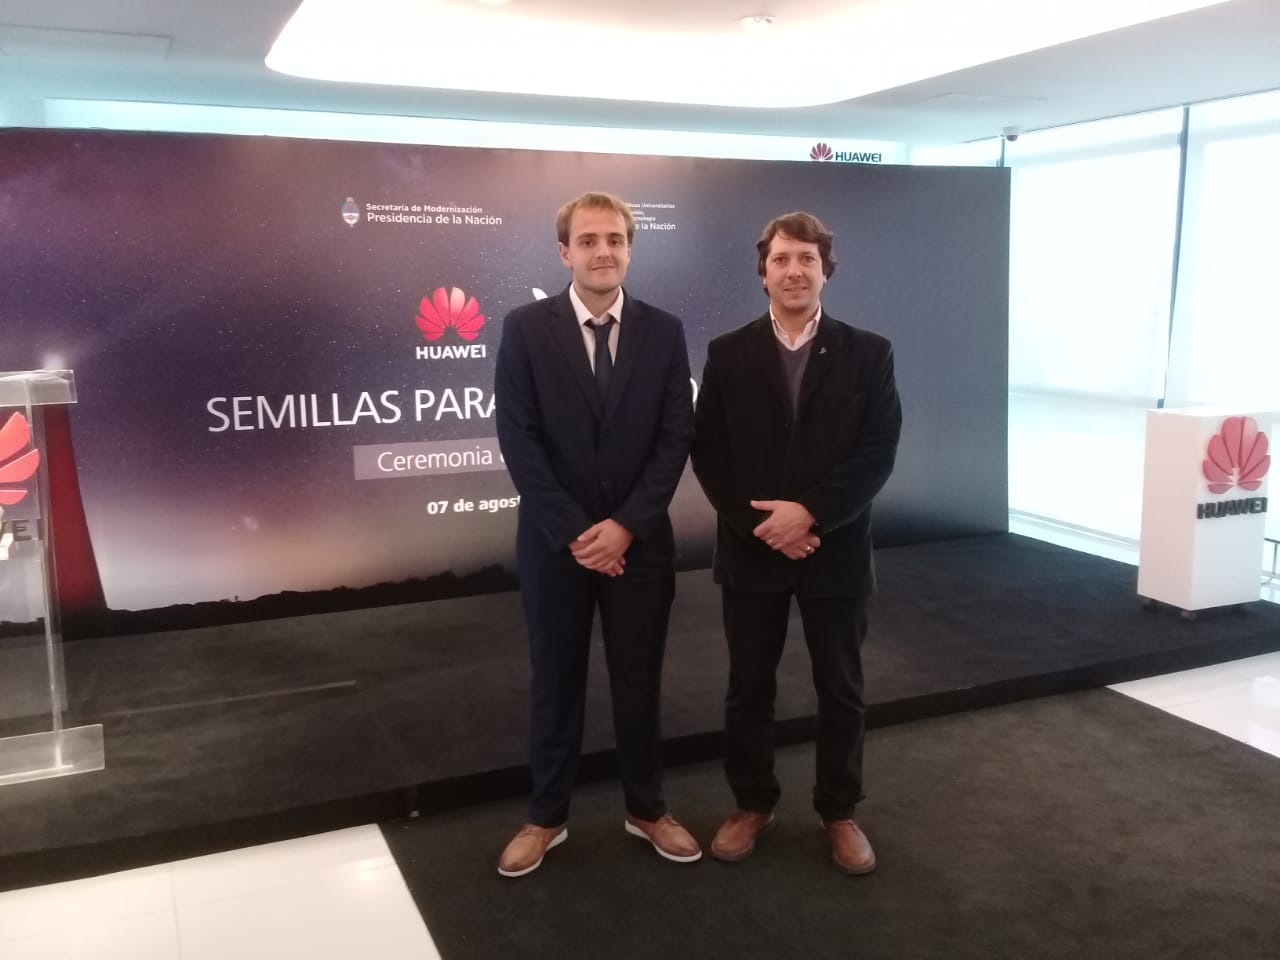 Programa Seeds for the Future 2019 de Huawei 2